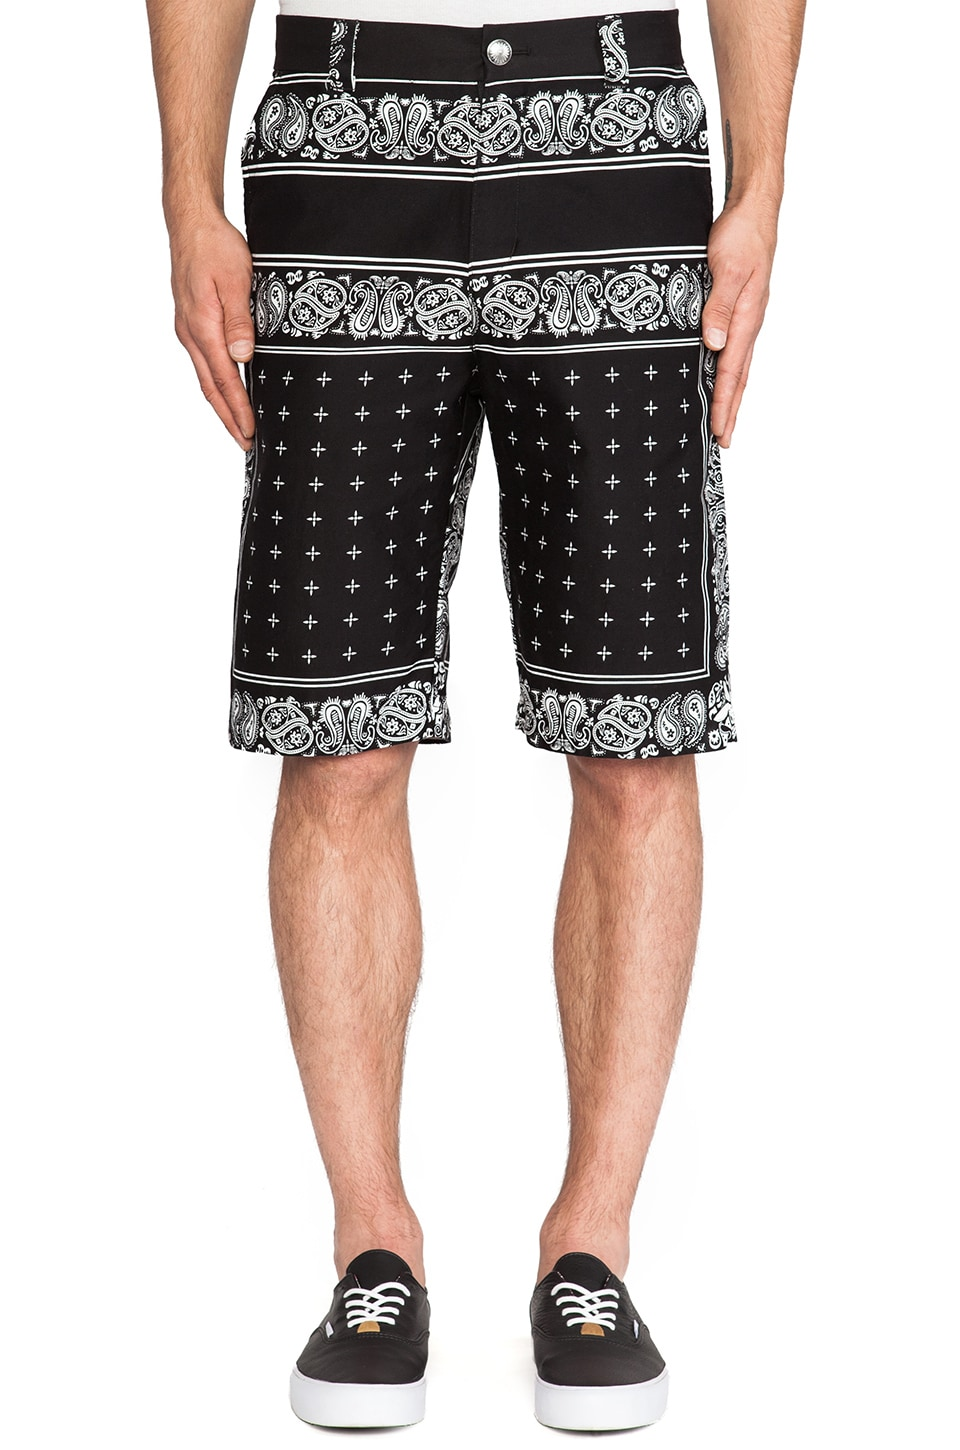 Fuct SSDD Death Bunny Bandana Shorts in Black